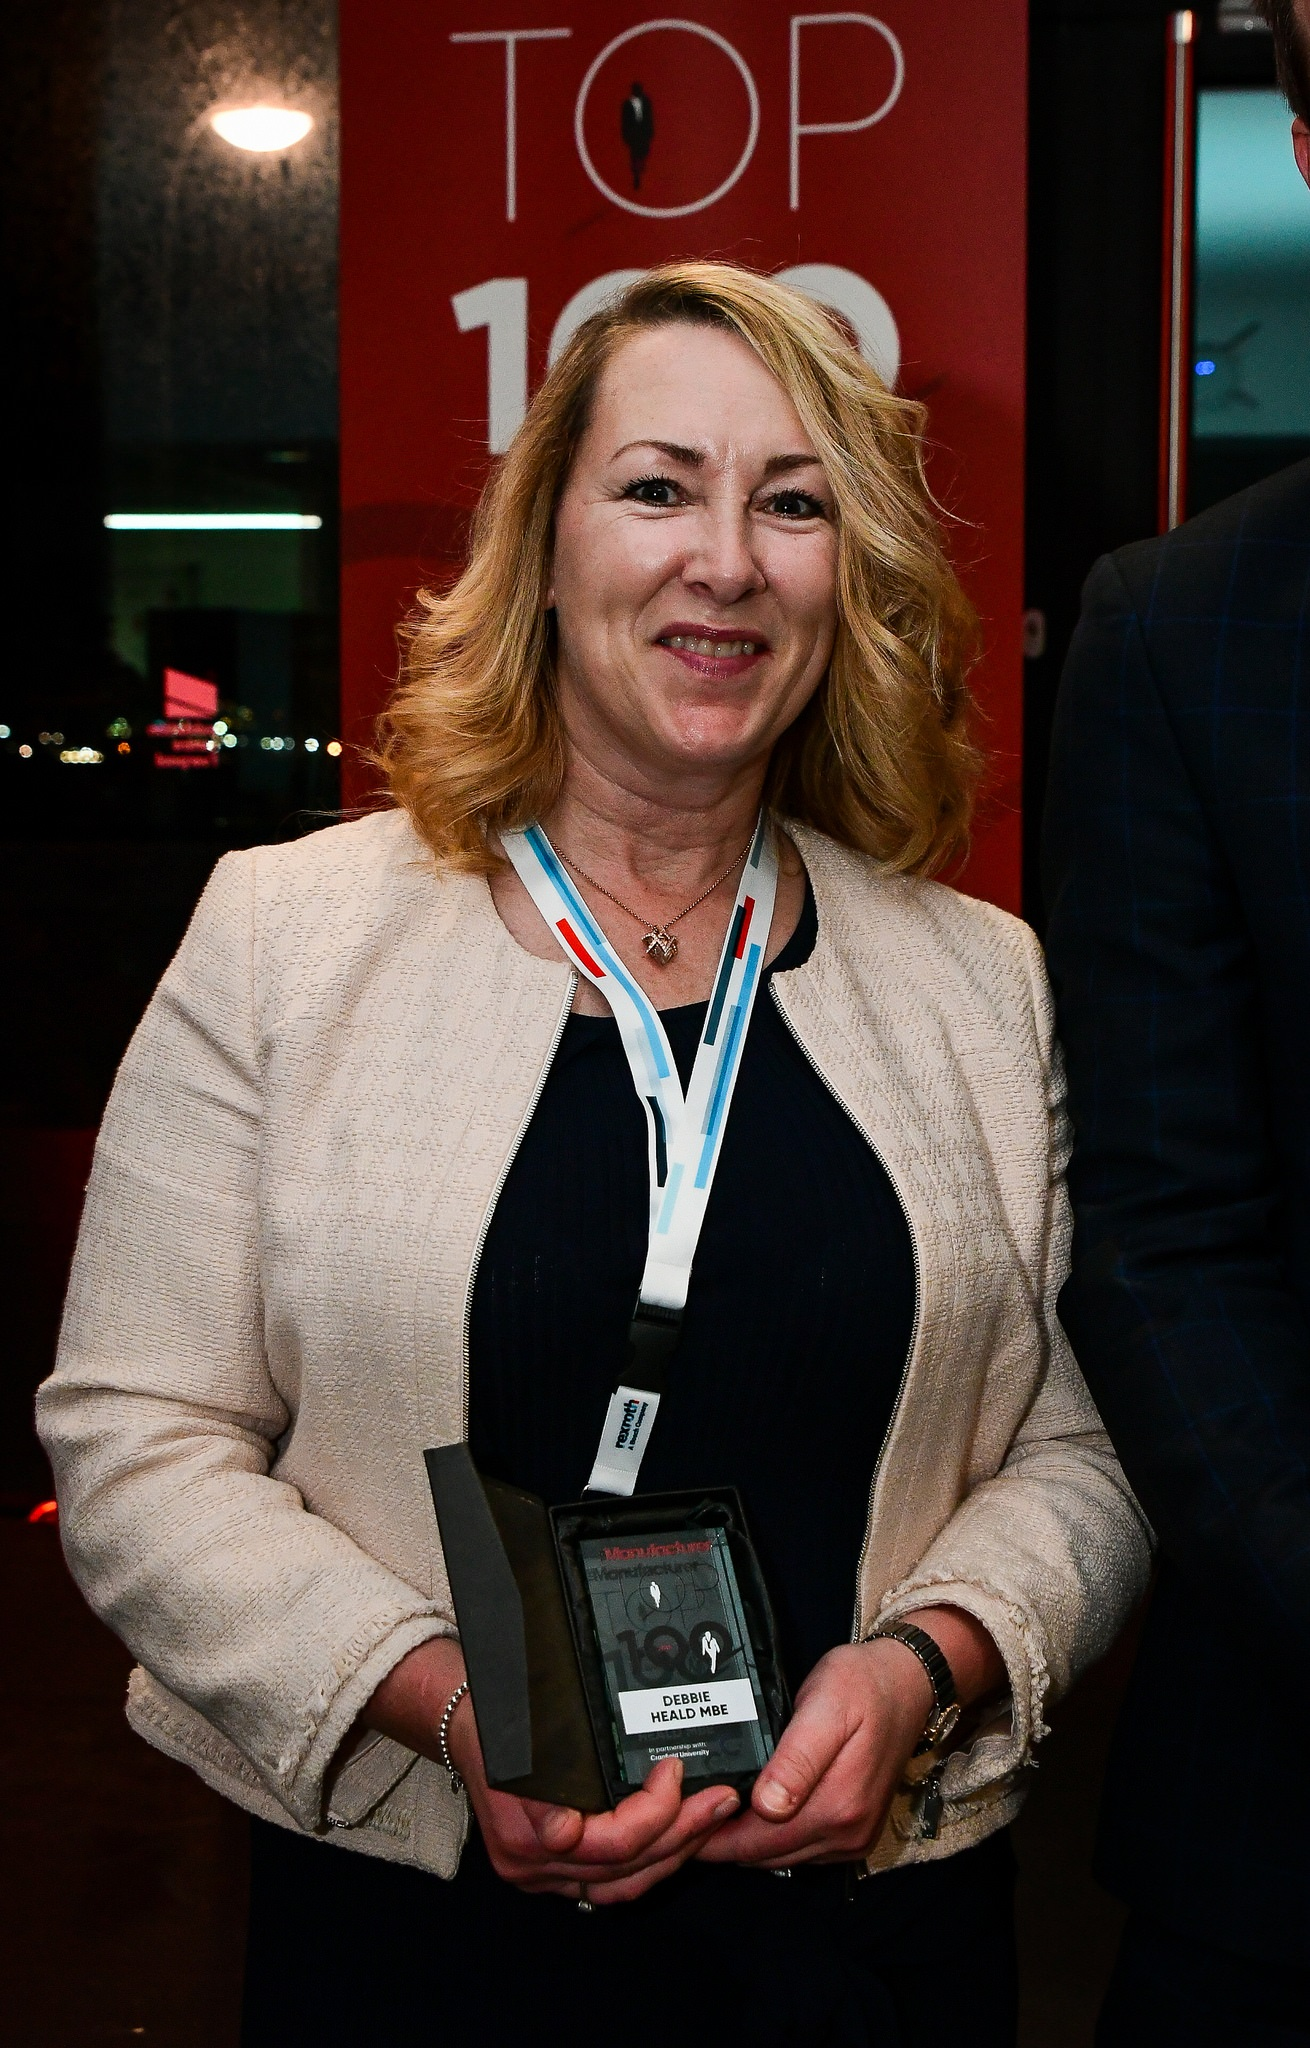 Debbie Heald was named as a Top 100 exemplar in 2018.